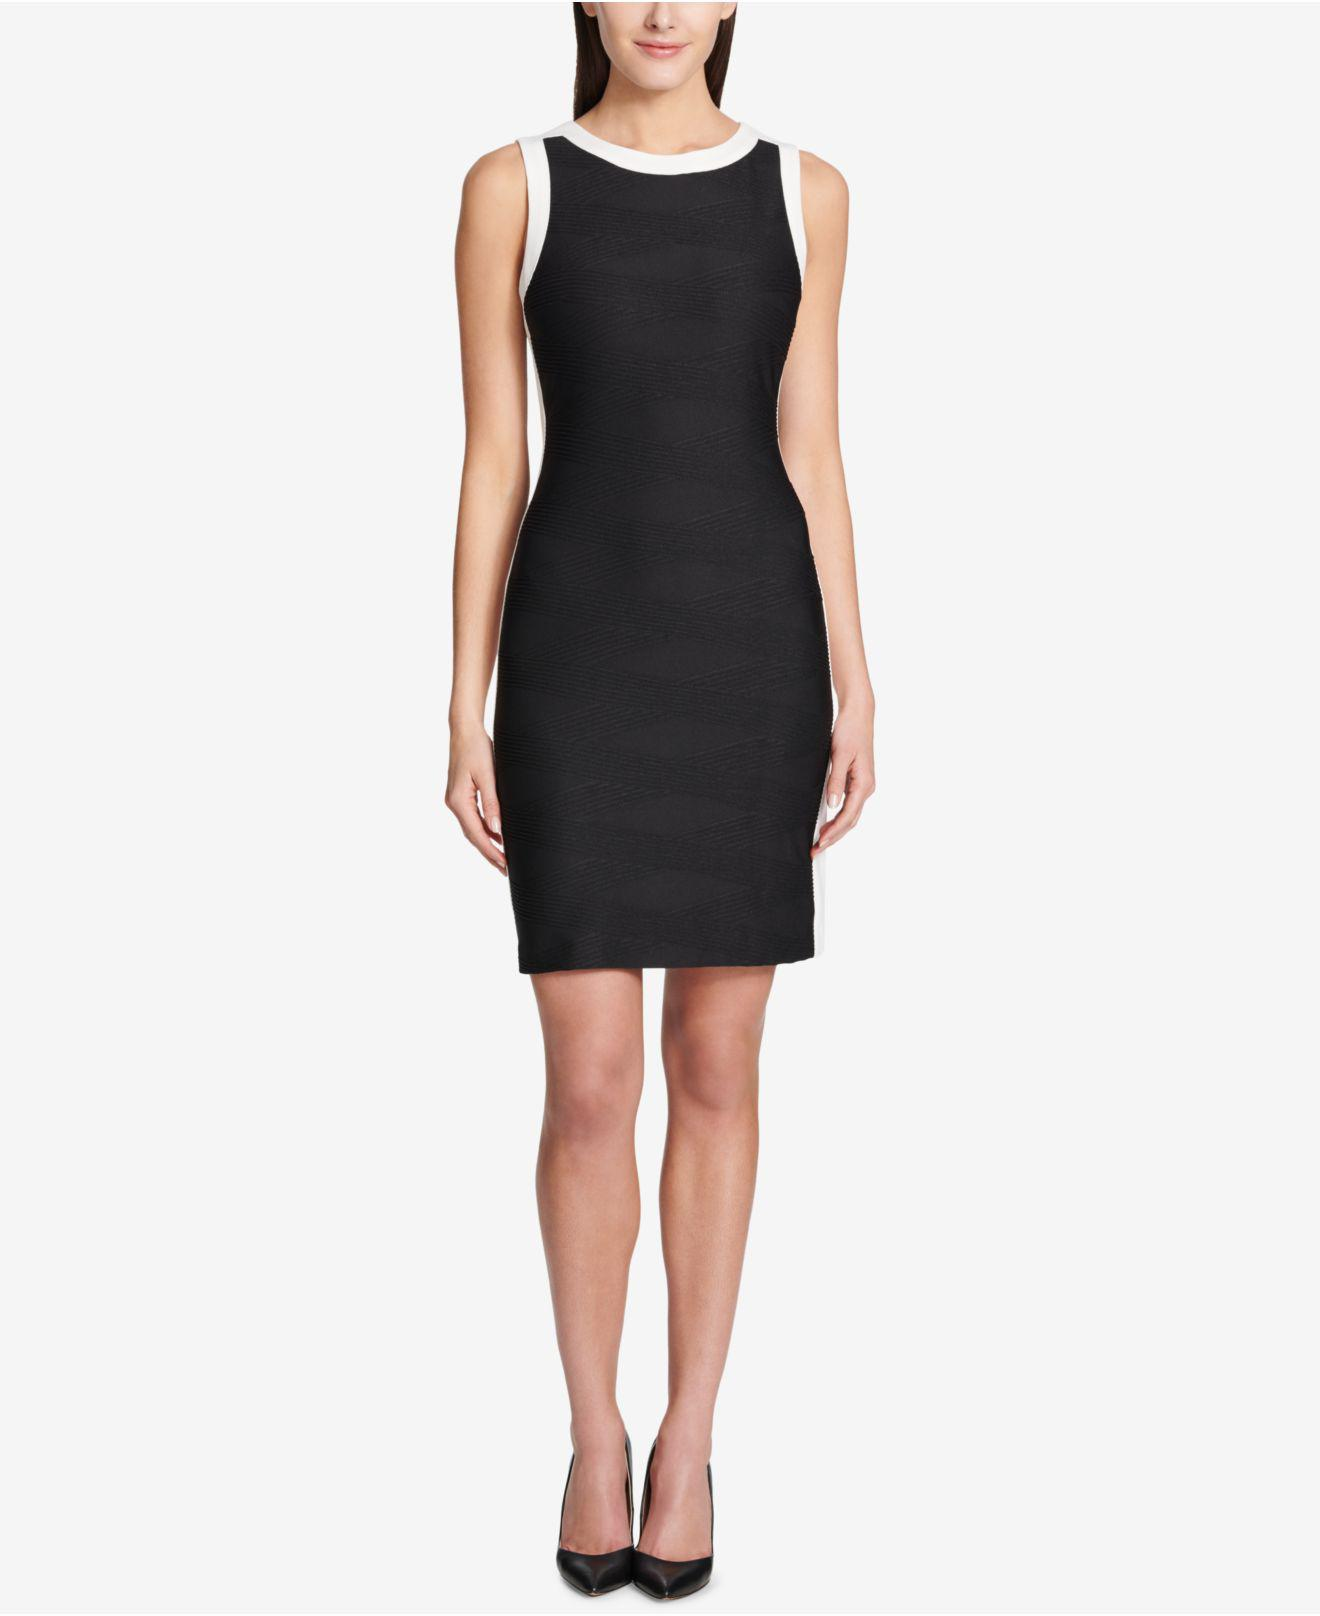 a429d922 Tommy Hilfiger Crisscross-knit Sheath Dress in Black - Lyst